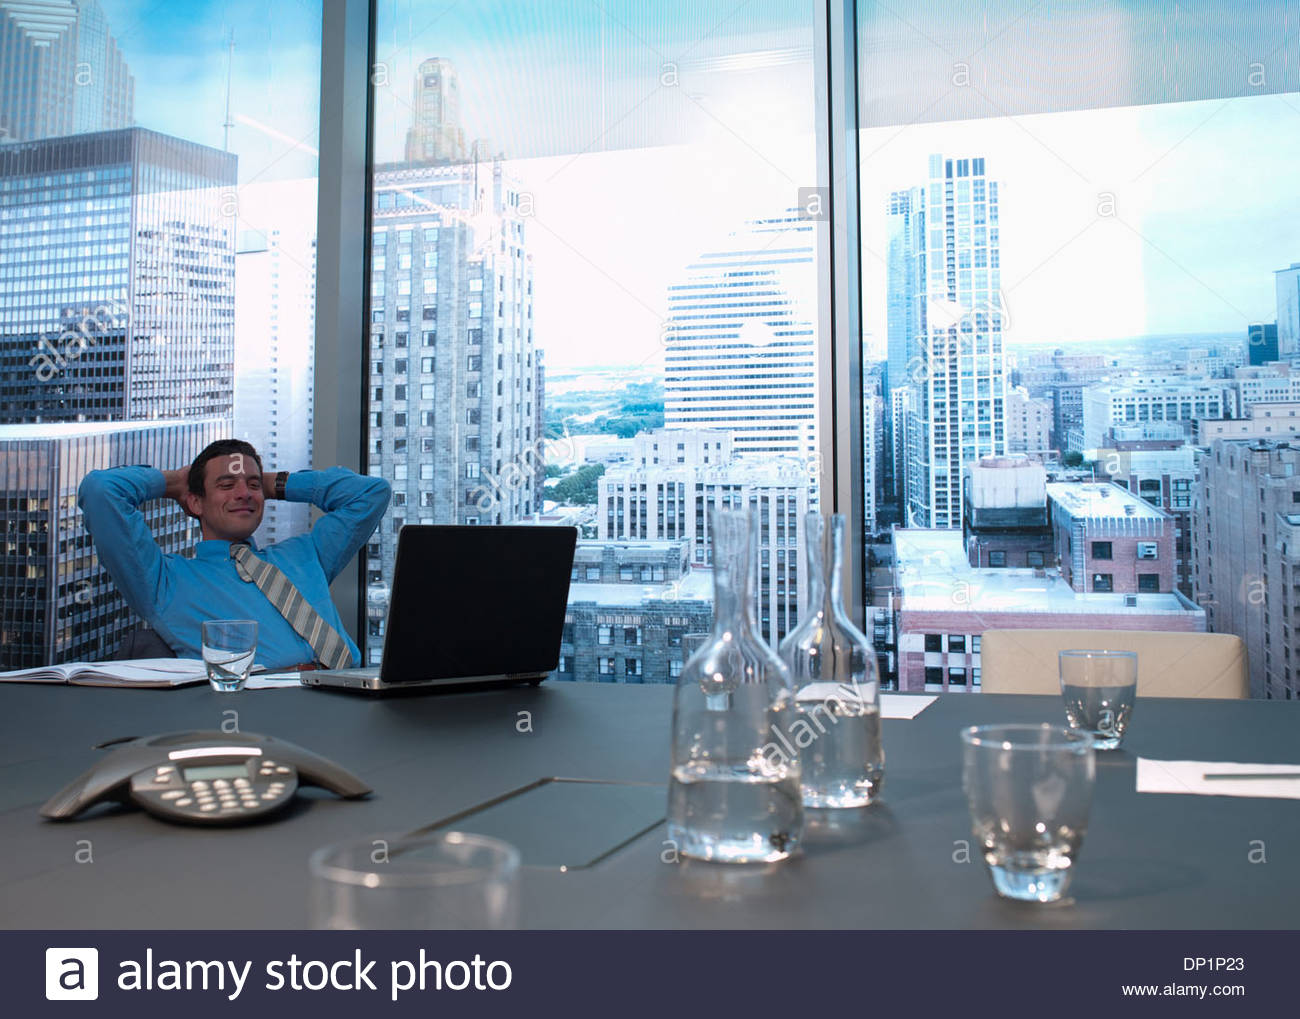 Smiling businessman with hands behind head in conference room - Stock Image